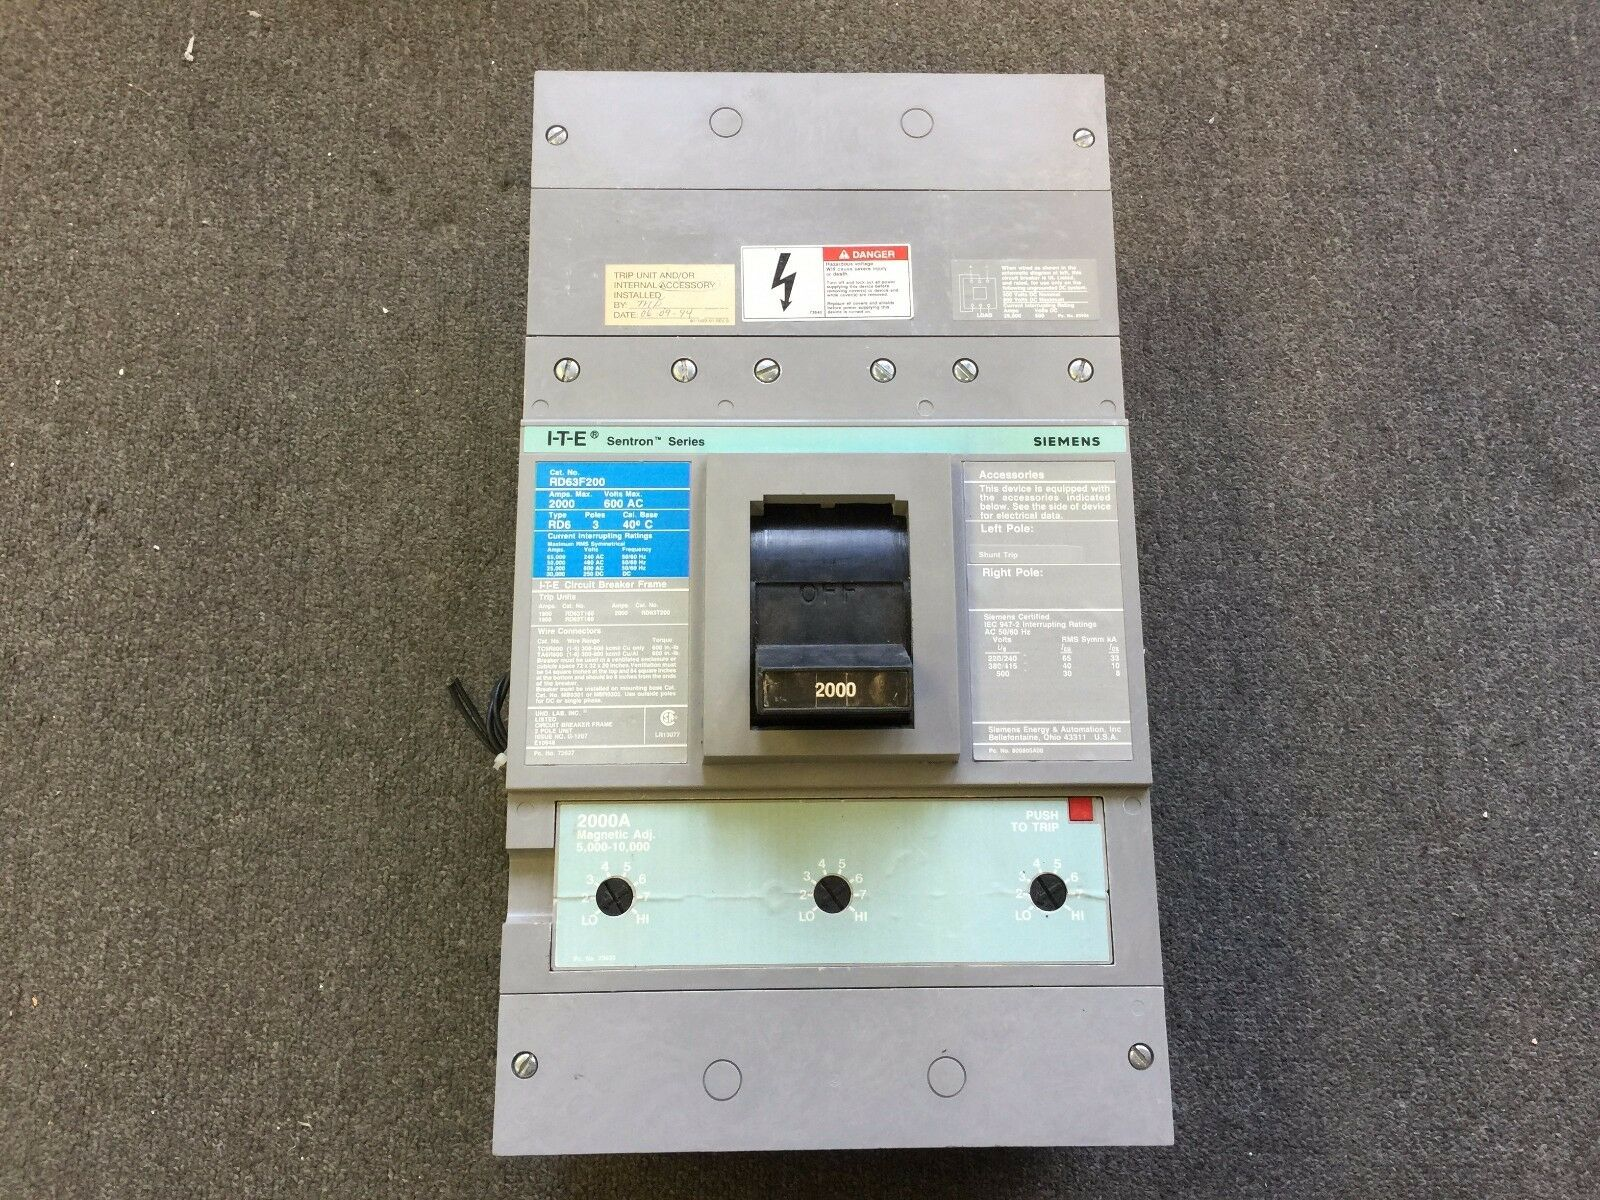 Siemens Shunt Trip Wiring Diagram S01ed60 Electrical Diagrams 3 Pole Circuit Breaker 1600 Amp Services U2022